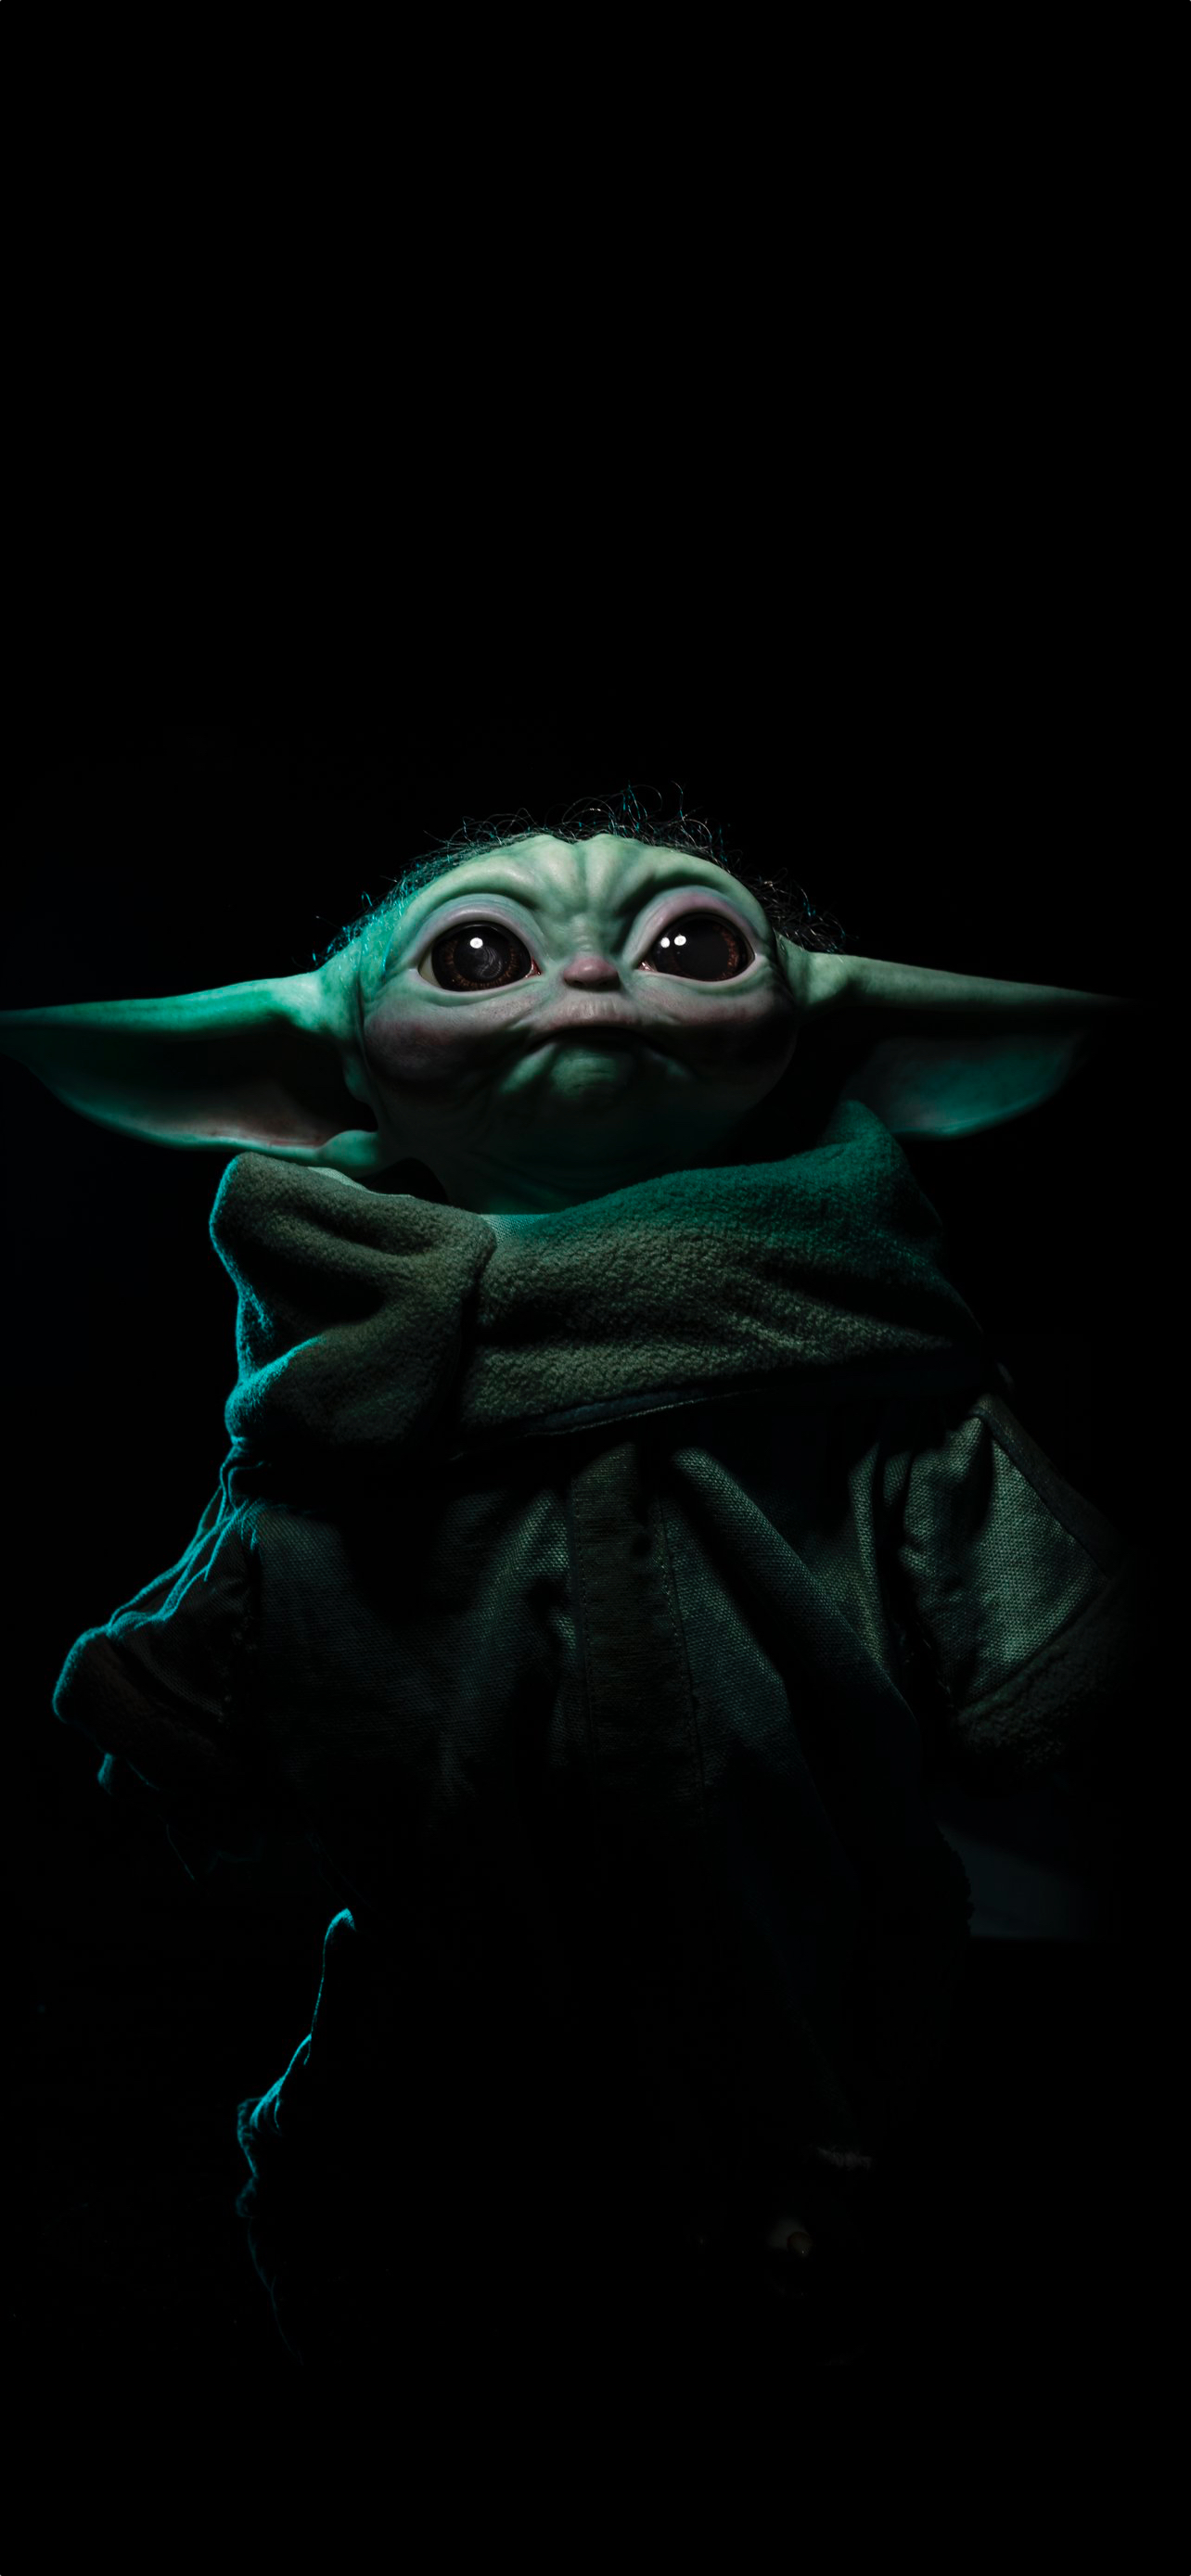 3 Beautiful Wallpapers Of Grogu The Child Also Known As Baby Yoda